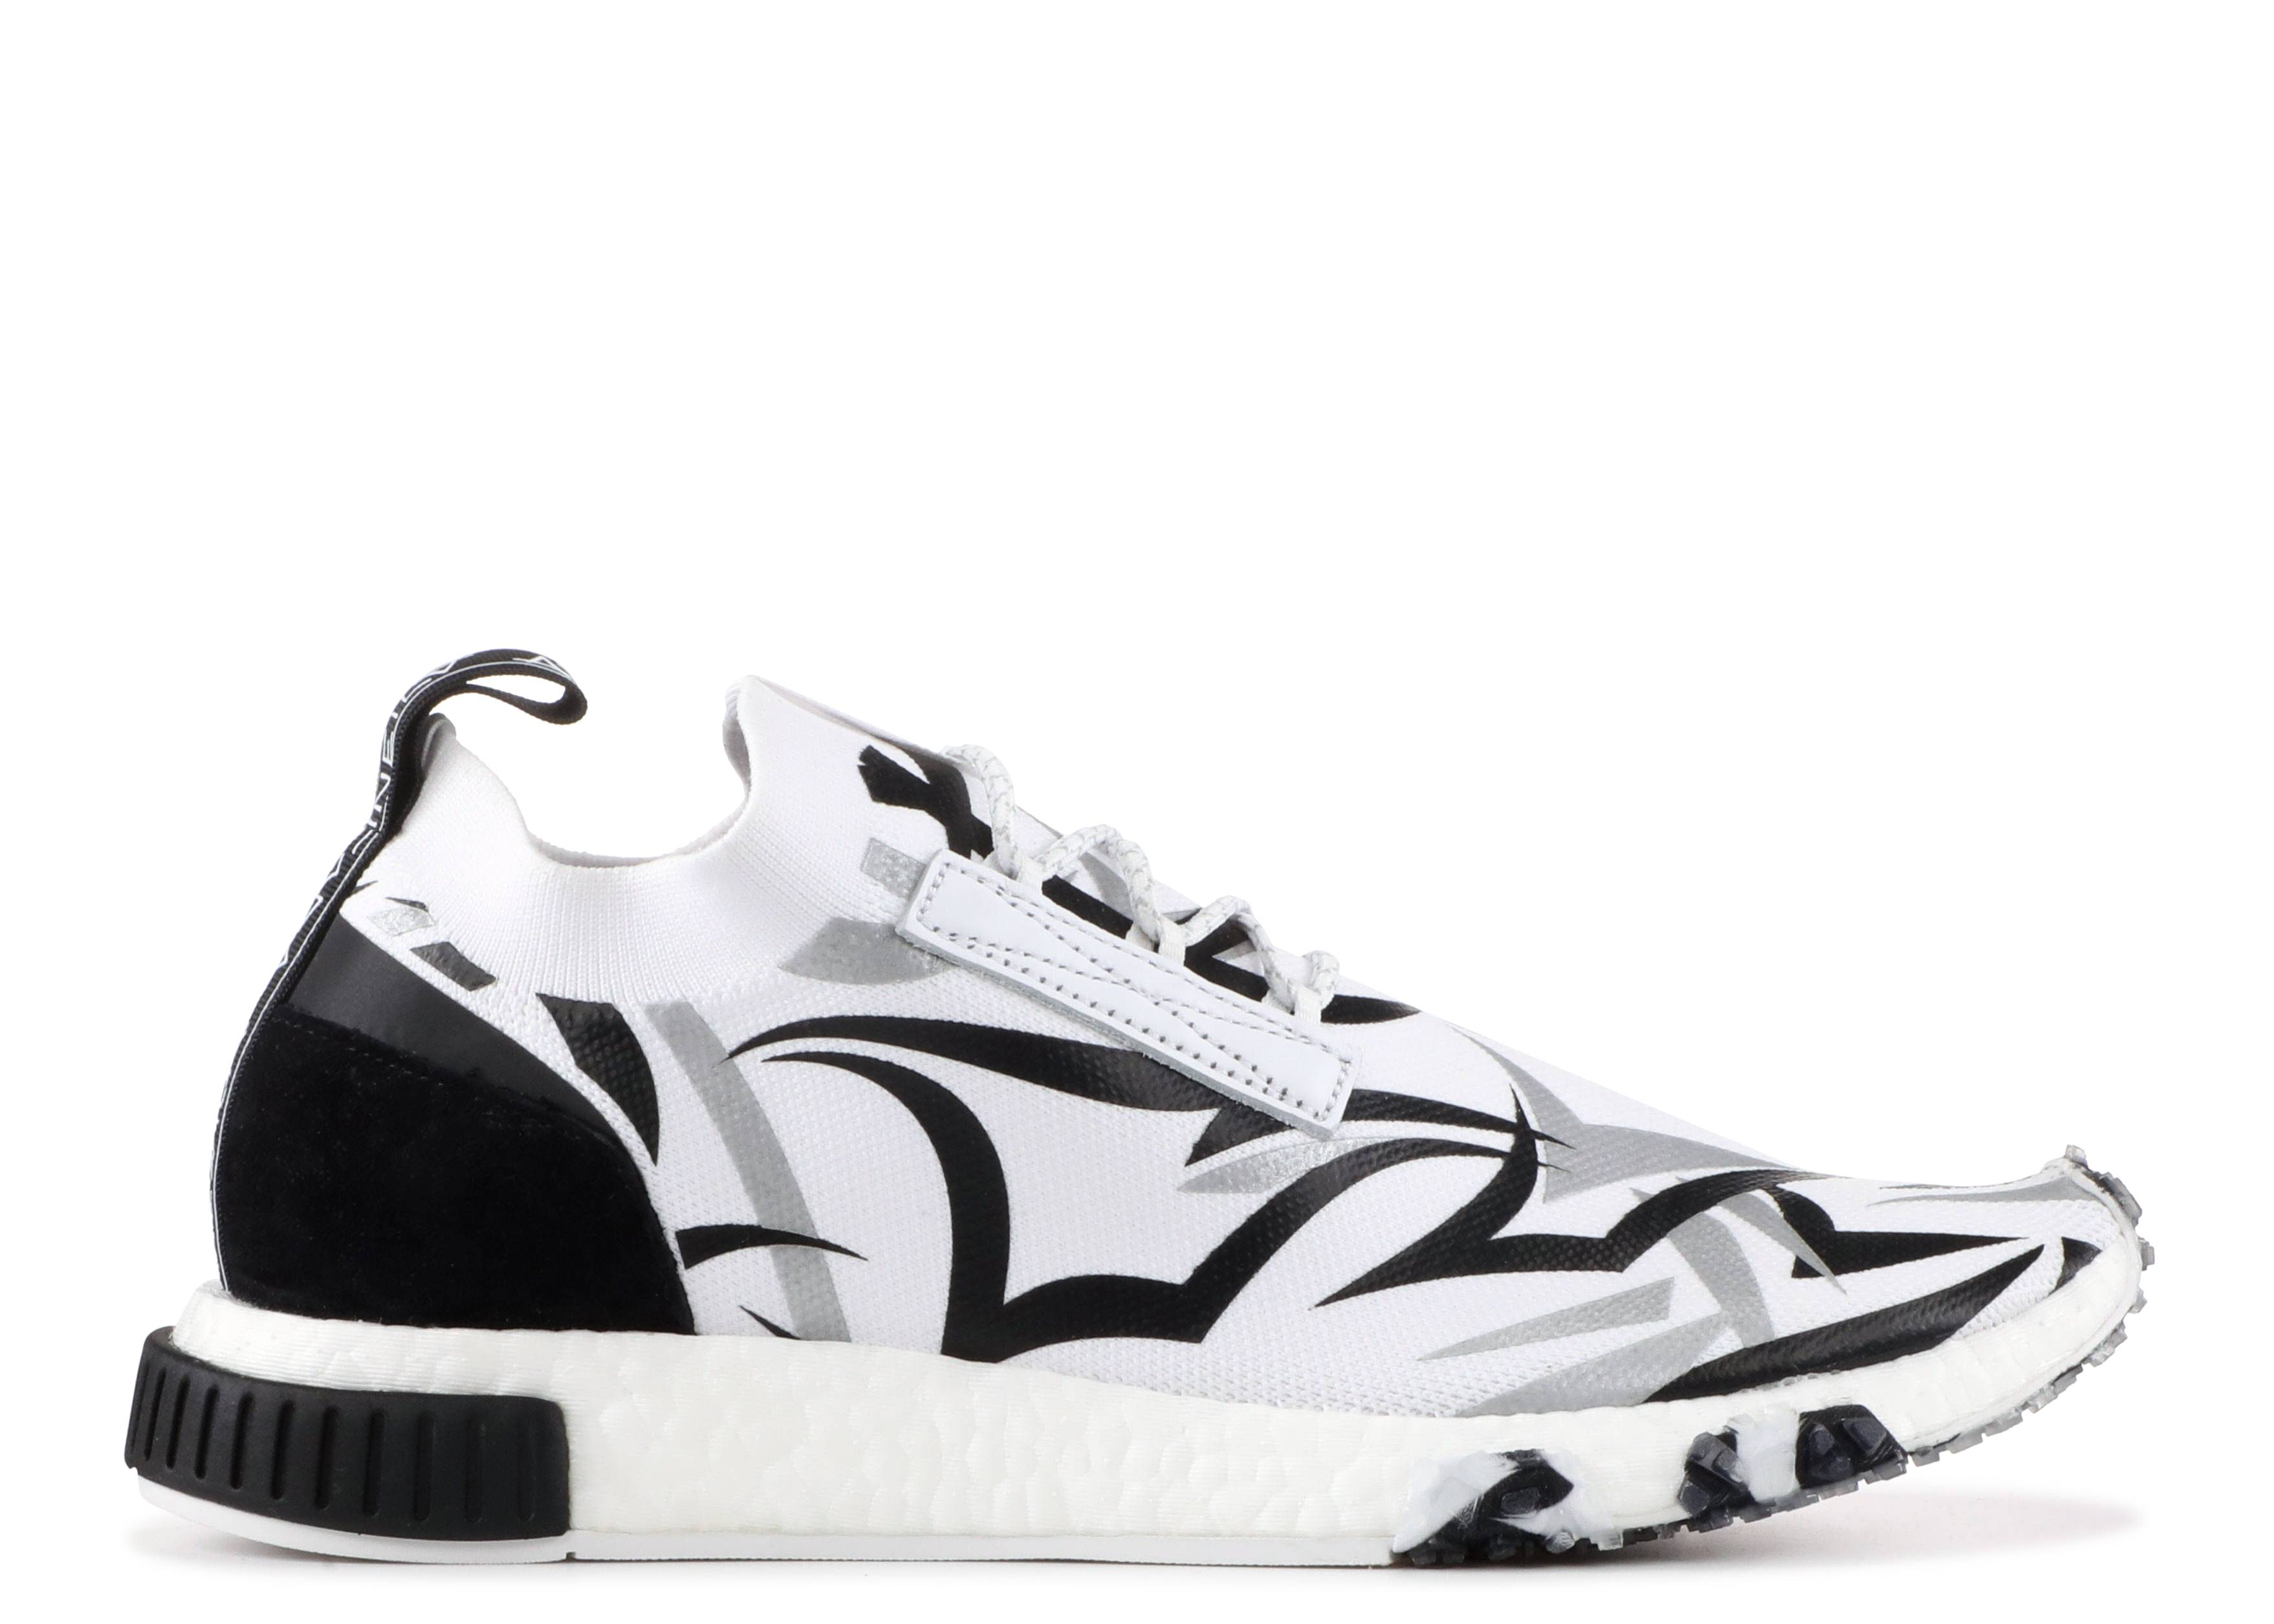 separation shoes 5a649 8c882 NMD Racer Juice